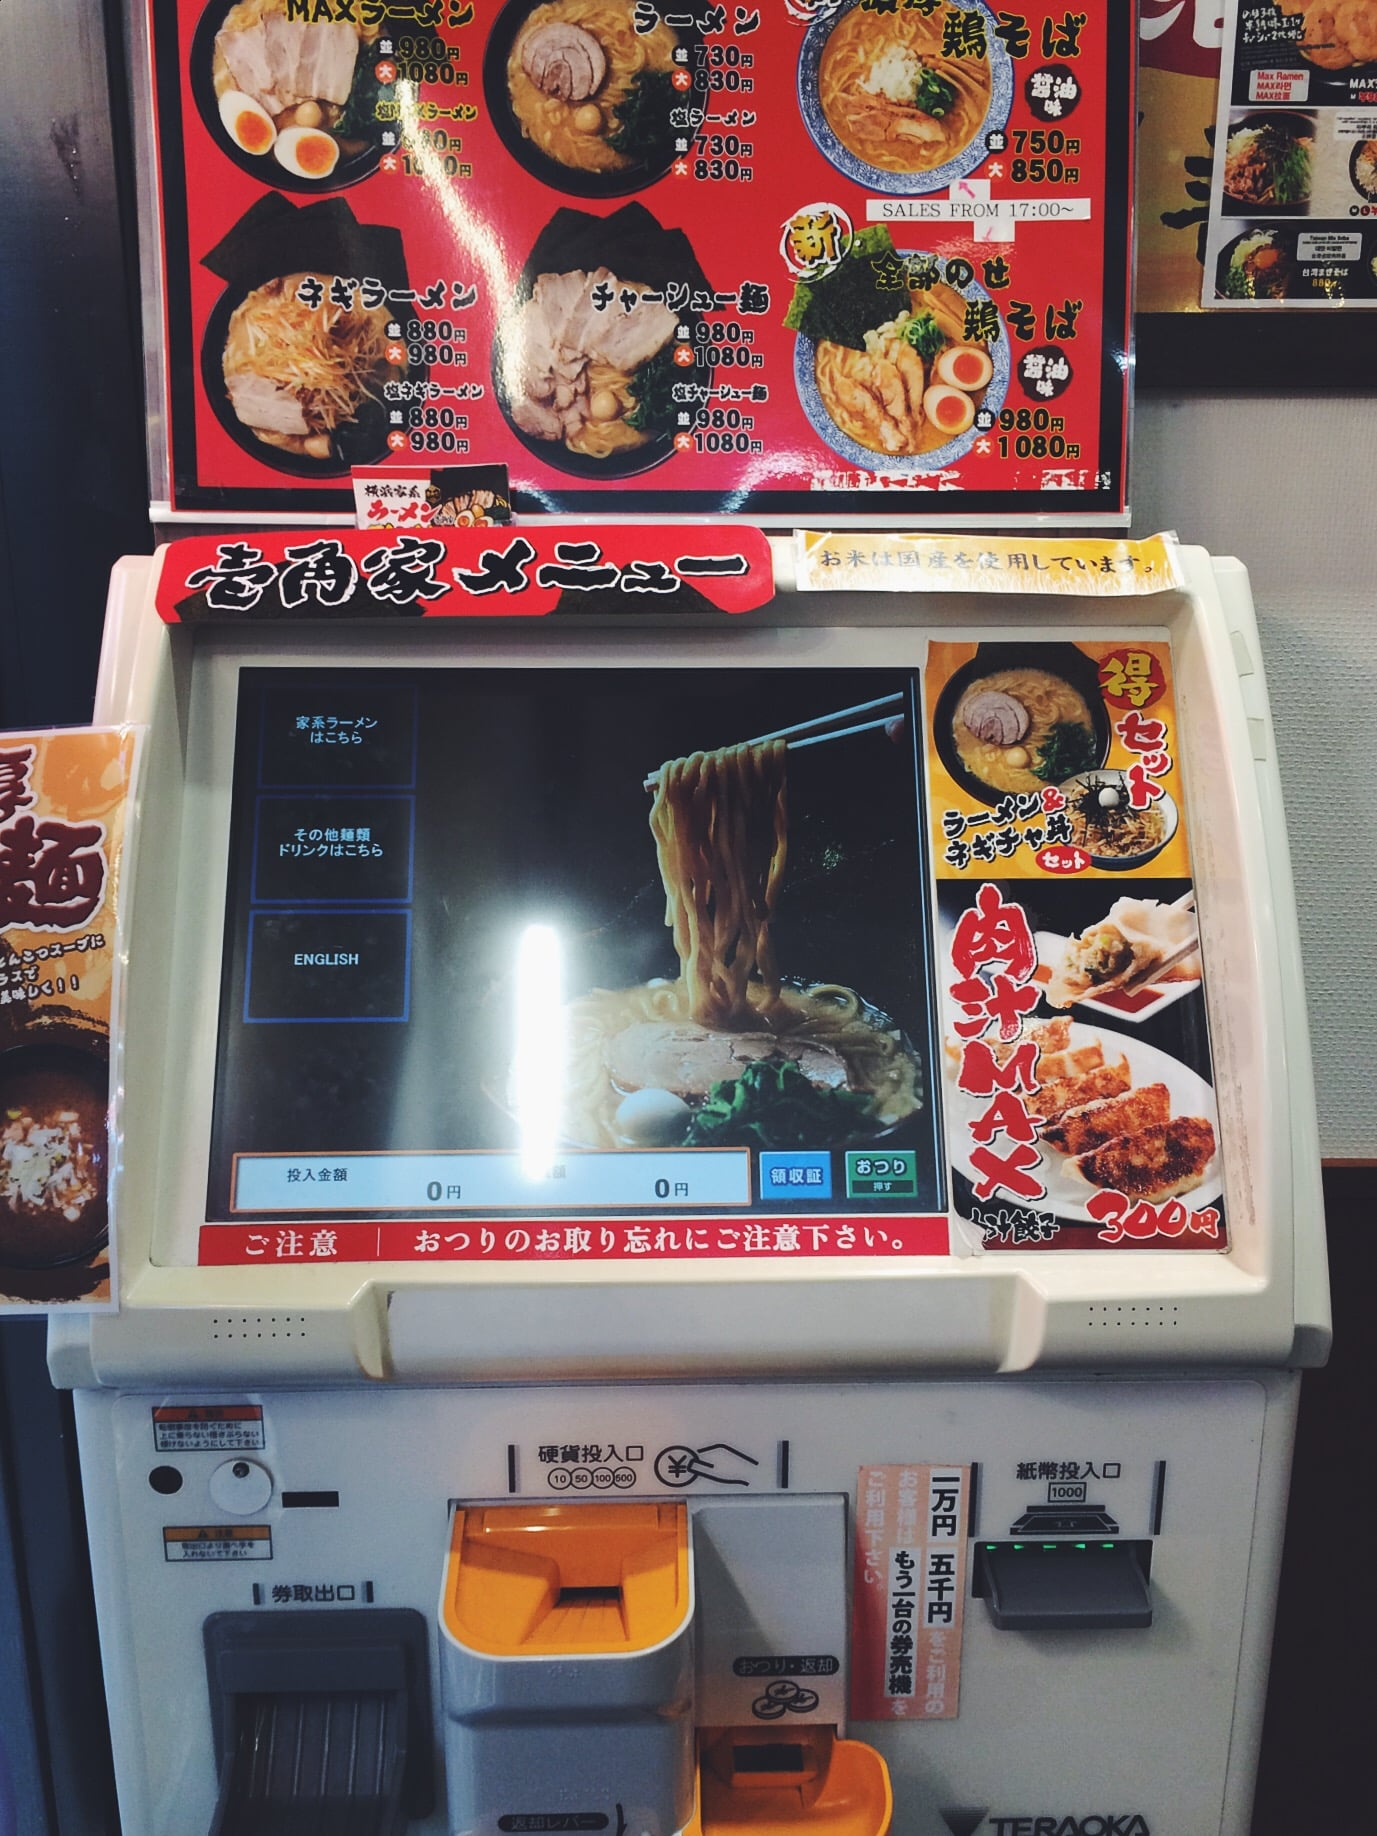 Meet our waiter. We placed our orders on this machine and hand the ticket to the cooks.